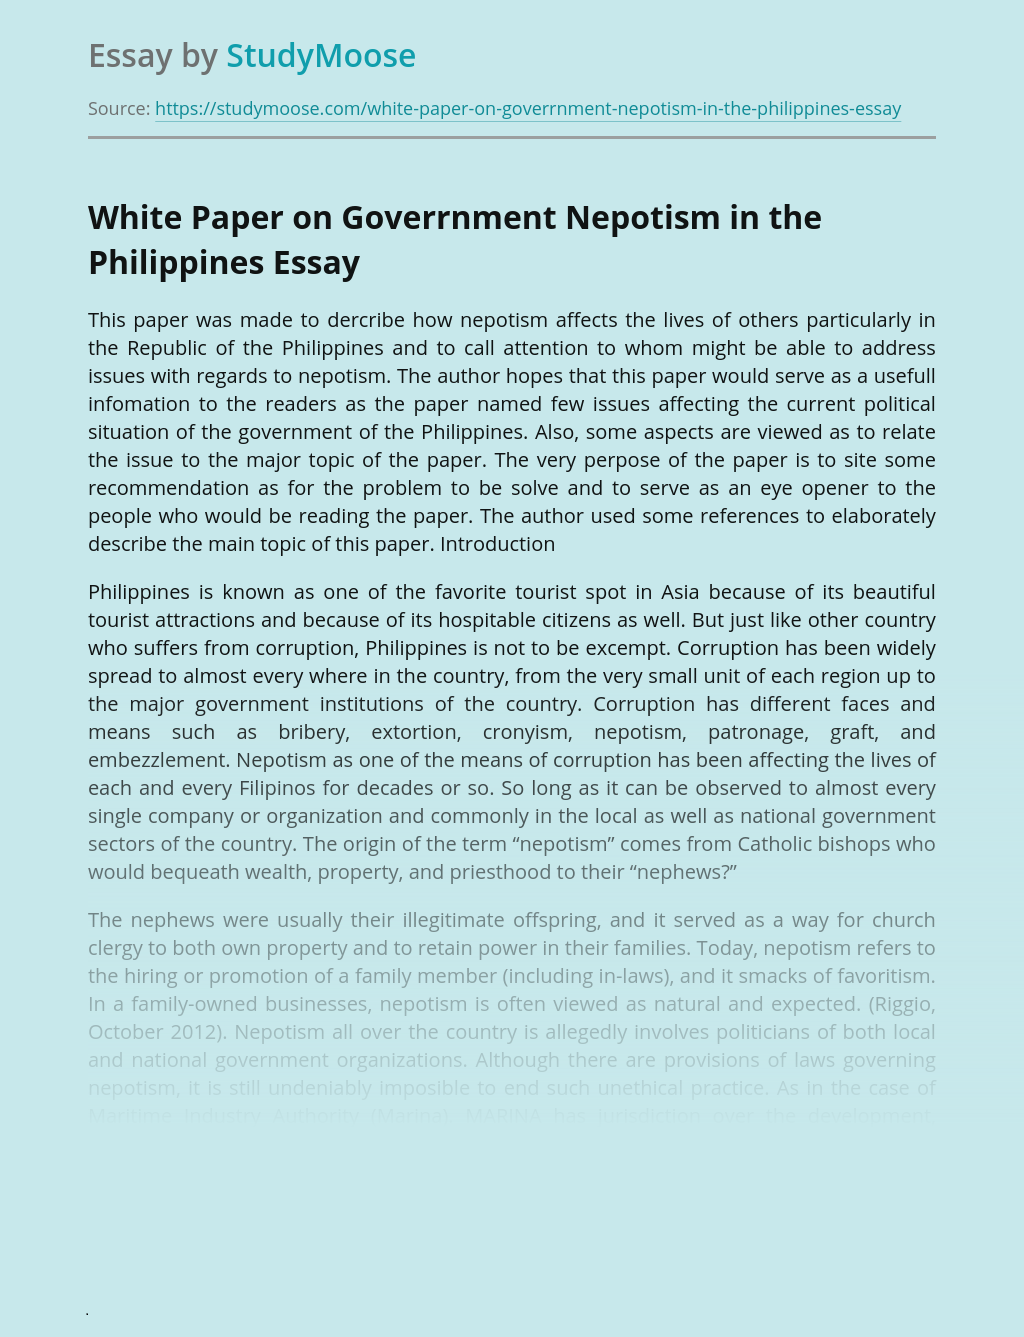 White Paper on Goverrnment Nepotism in the Philippines